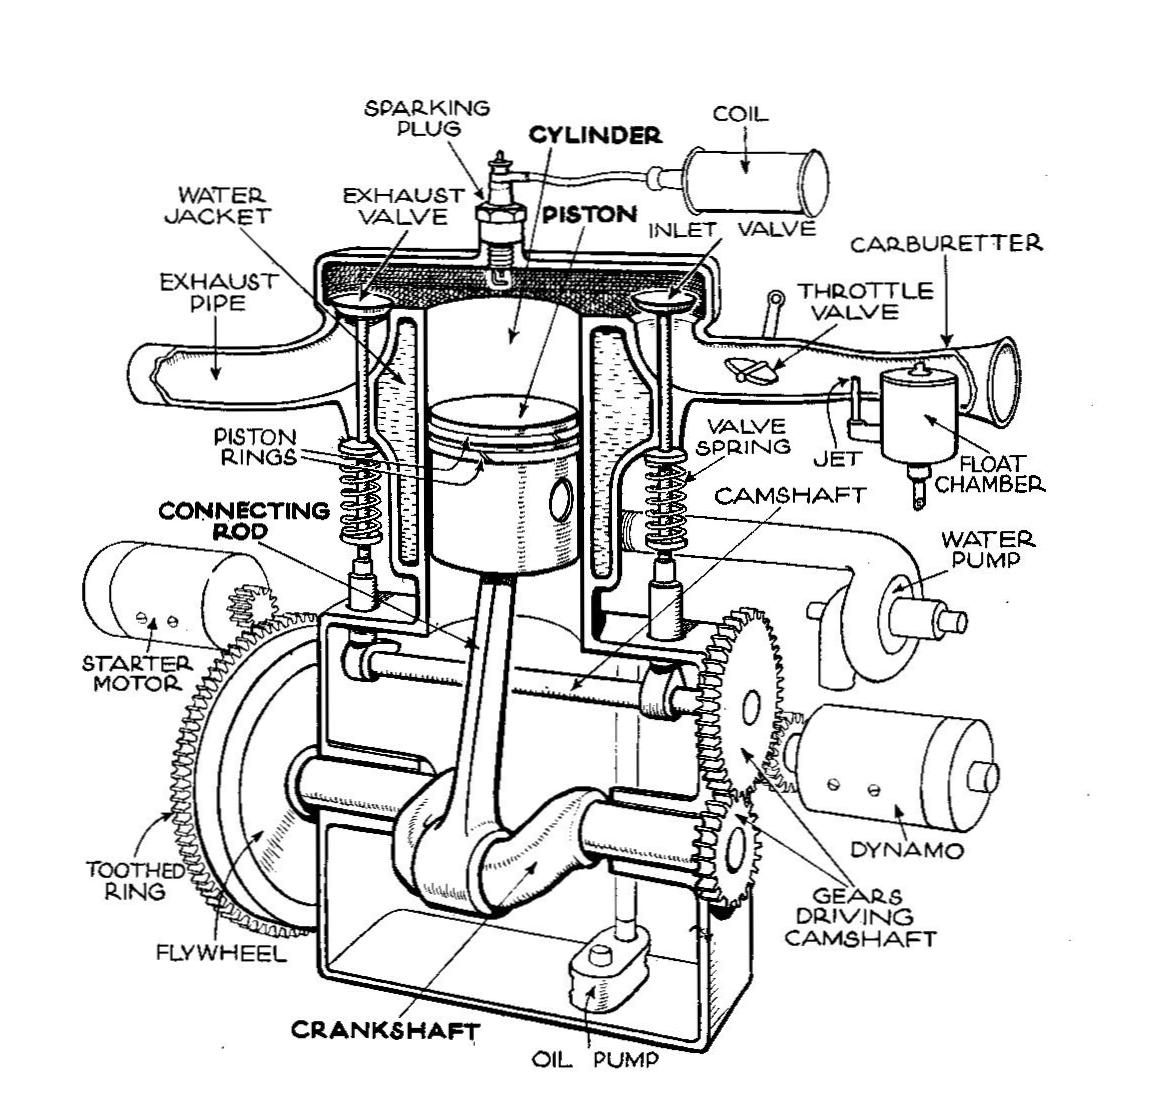 Small Engine Diagram Change Your Idea With Wiring Design Subaru Flathead Wikipedia Labeled Charging System